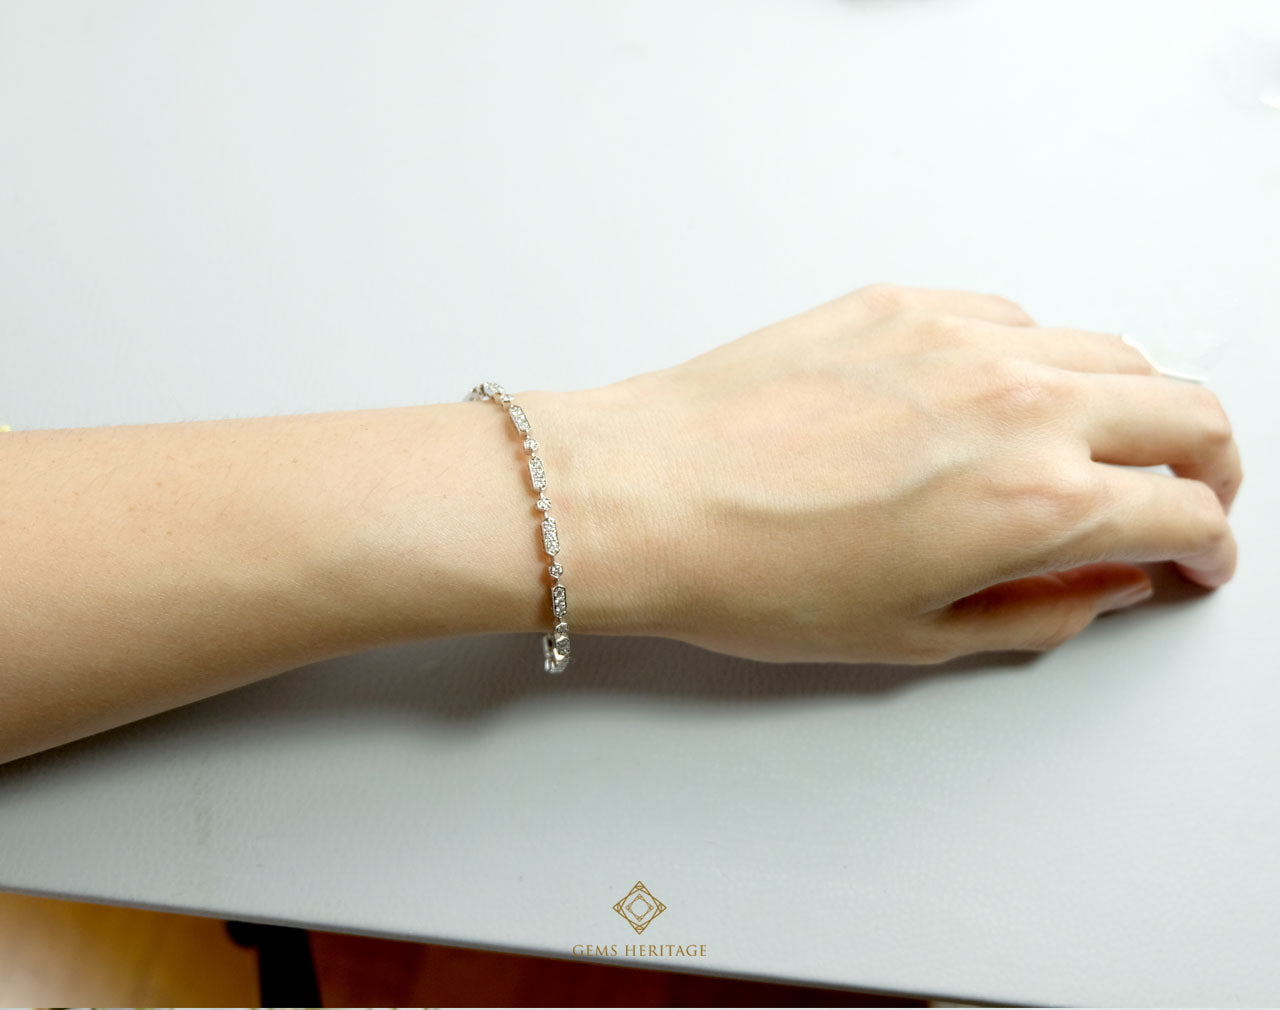 Blocks Diamond bracelet